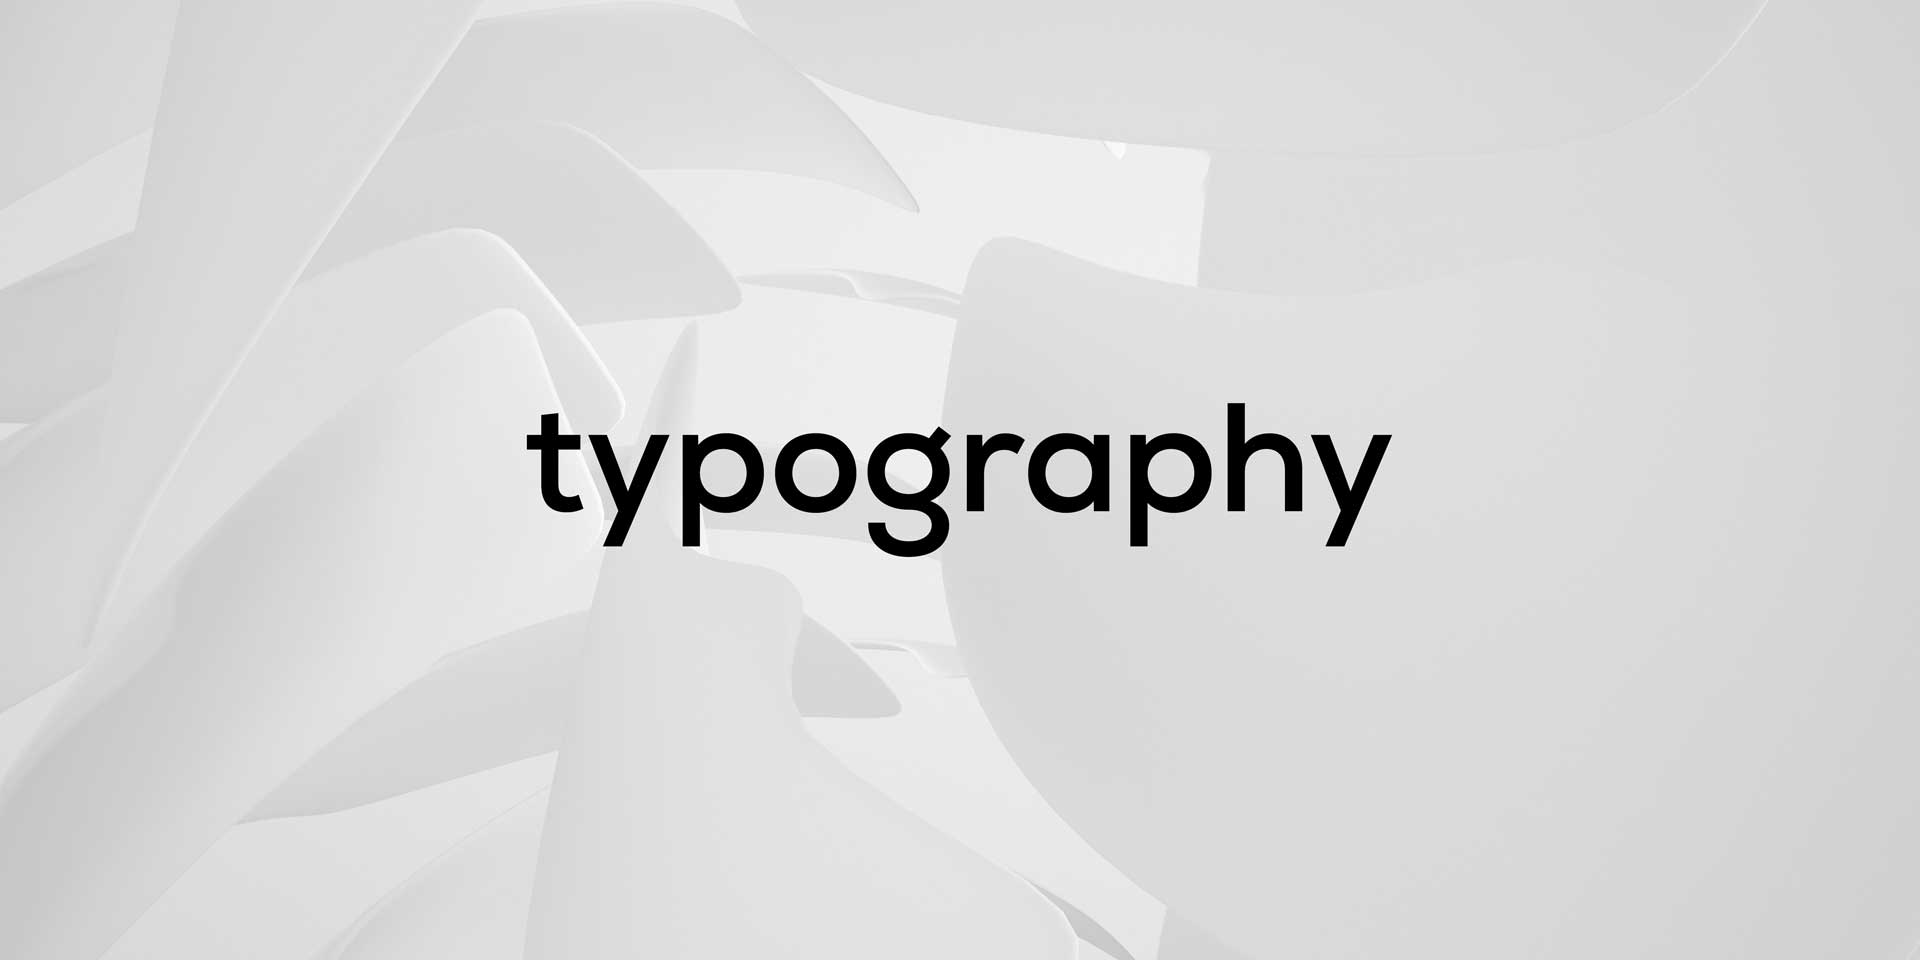 Typography and the creation of messages